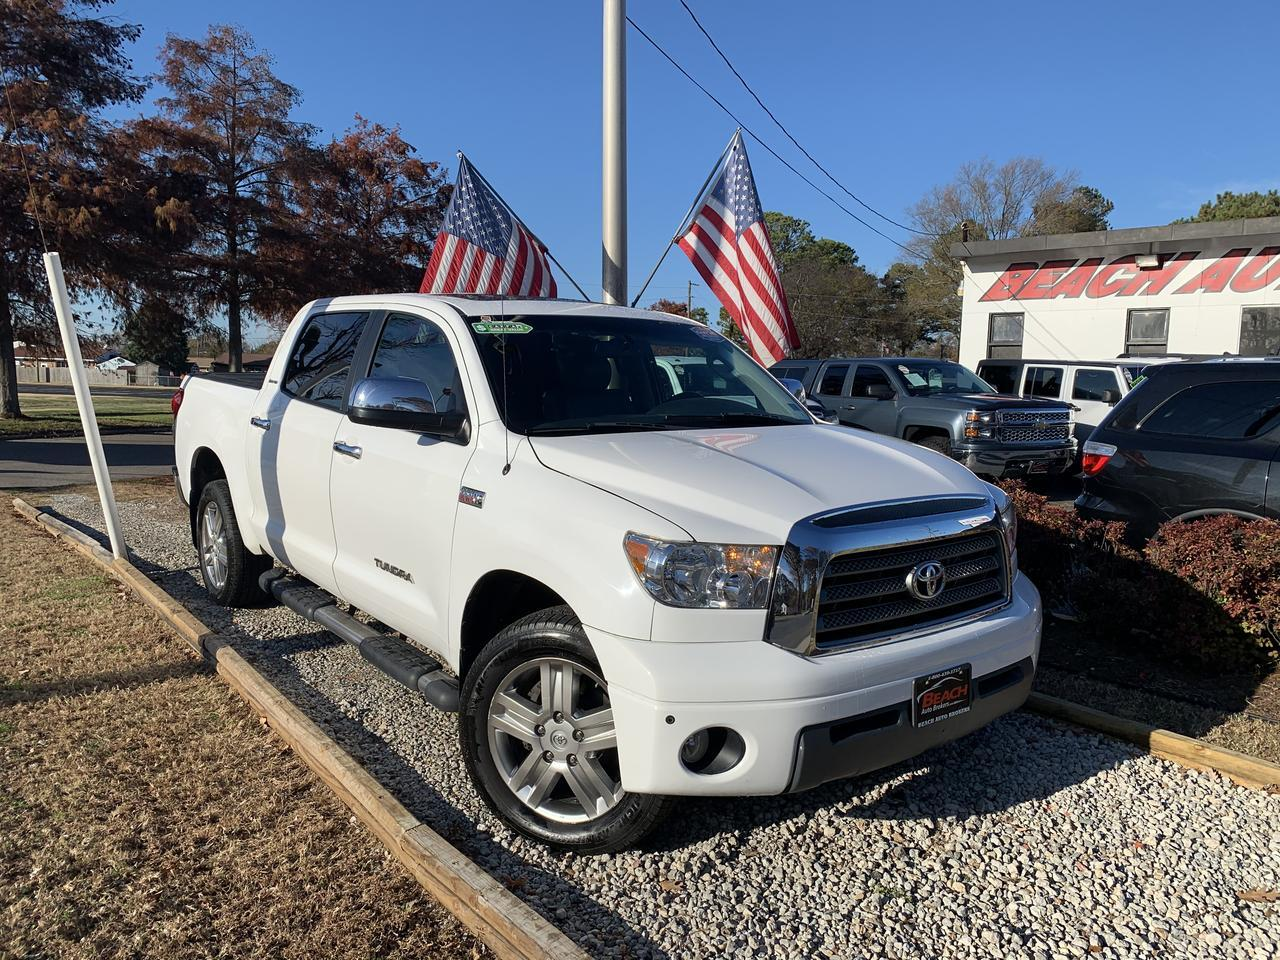 2008 TOYOTA TUNDRA LIMITED CREW MAX 4X4, WARRANTY, LEATHER, NAV, SUNROOF, BACKUP CAM, HEATED FRONT SEATS!